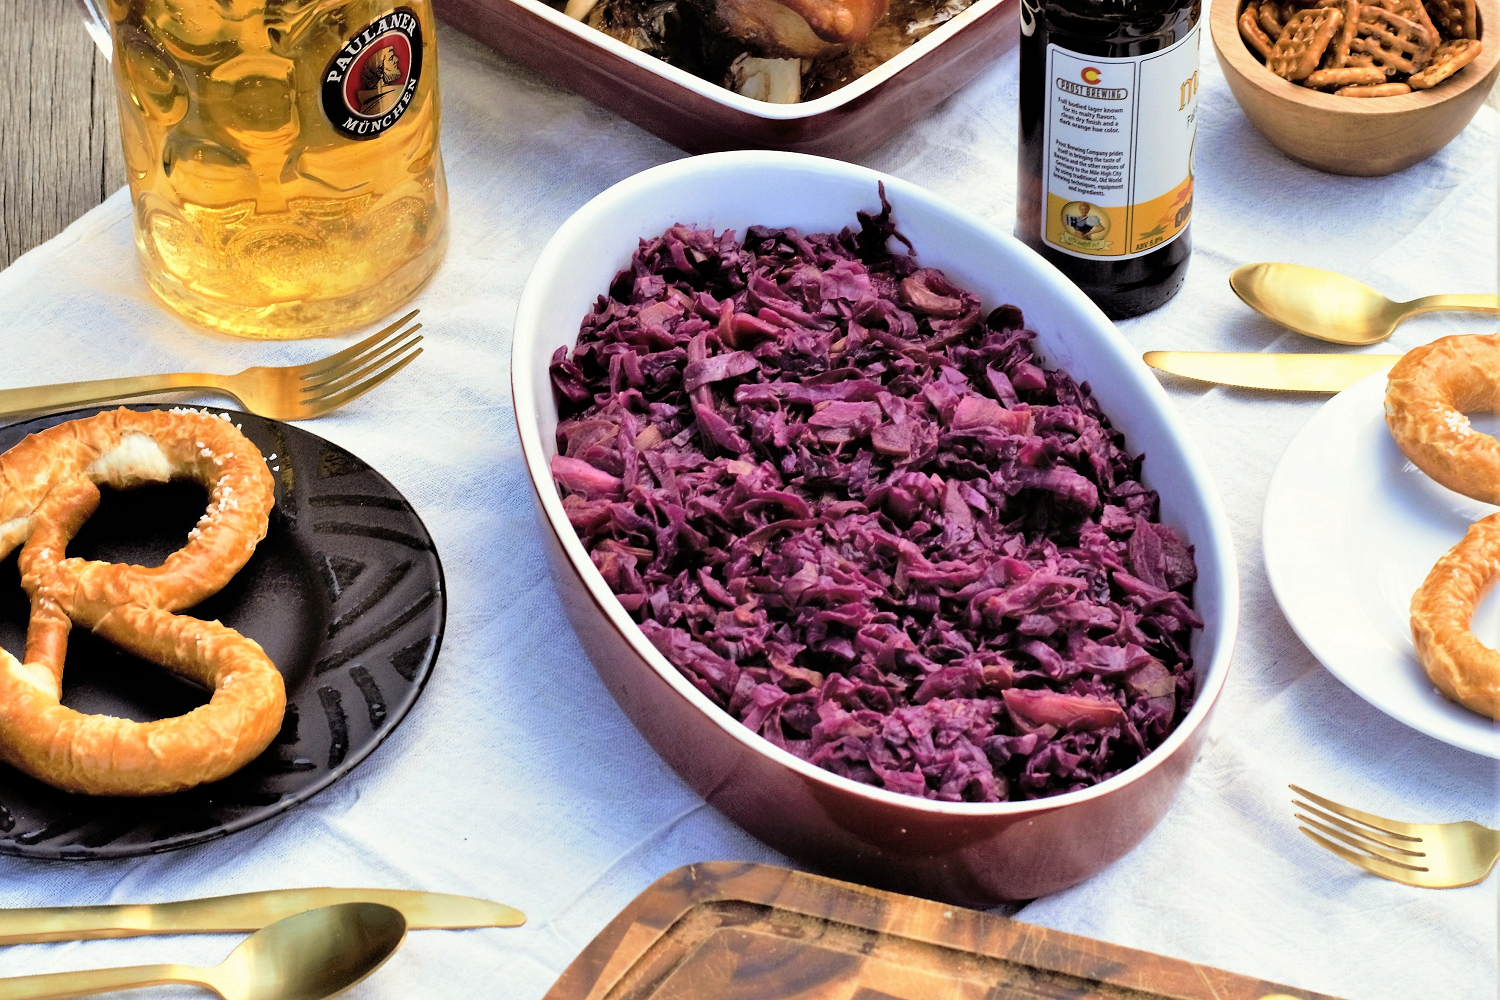 Sweet & tart rotkohl is the coziest fall vegetable dish! Red cabbage slow-simmers with apple slices, sweet onion, & cloves until the flavors marry together.